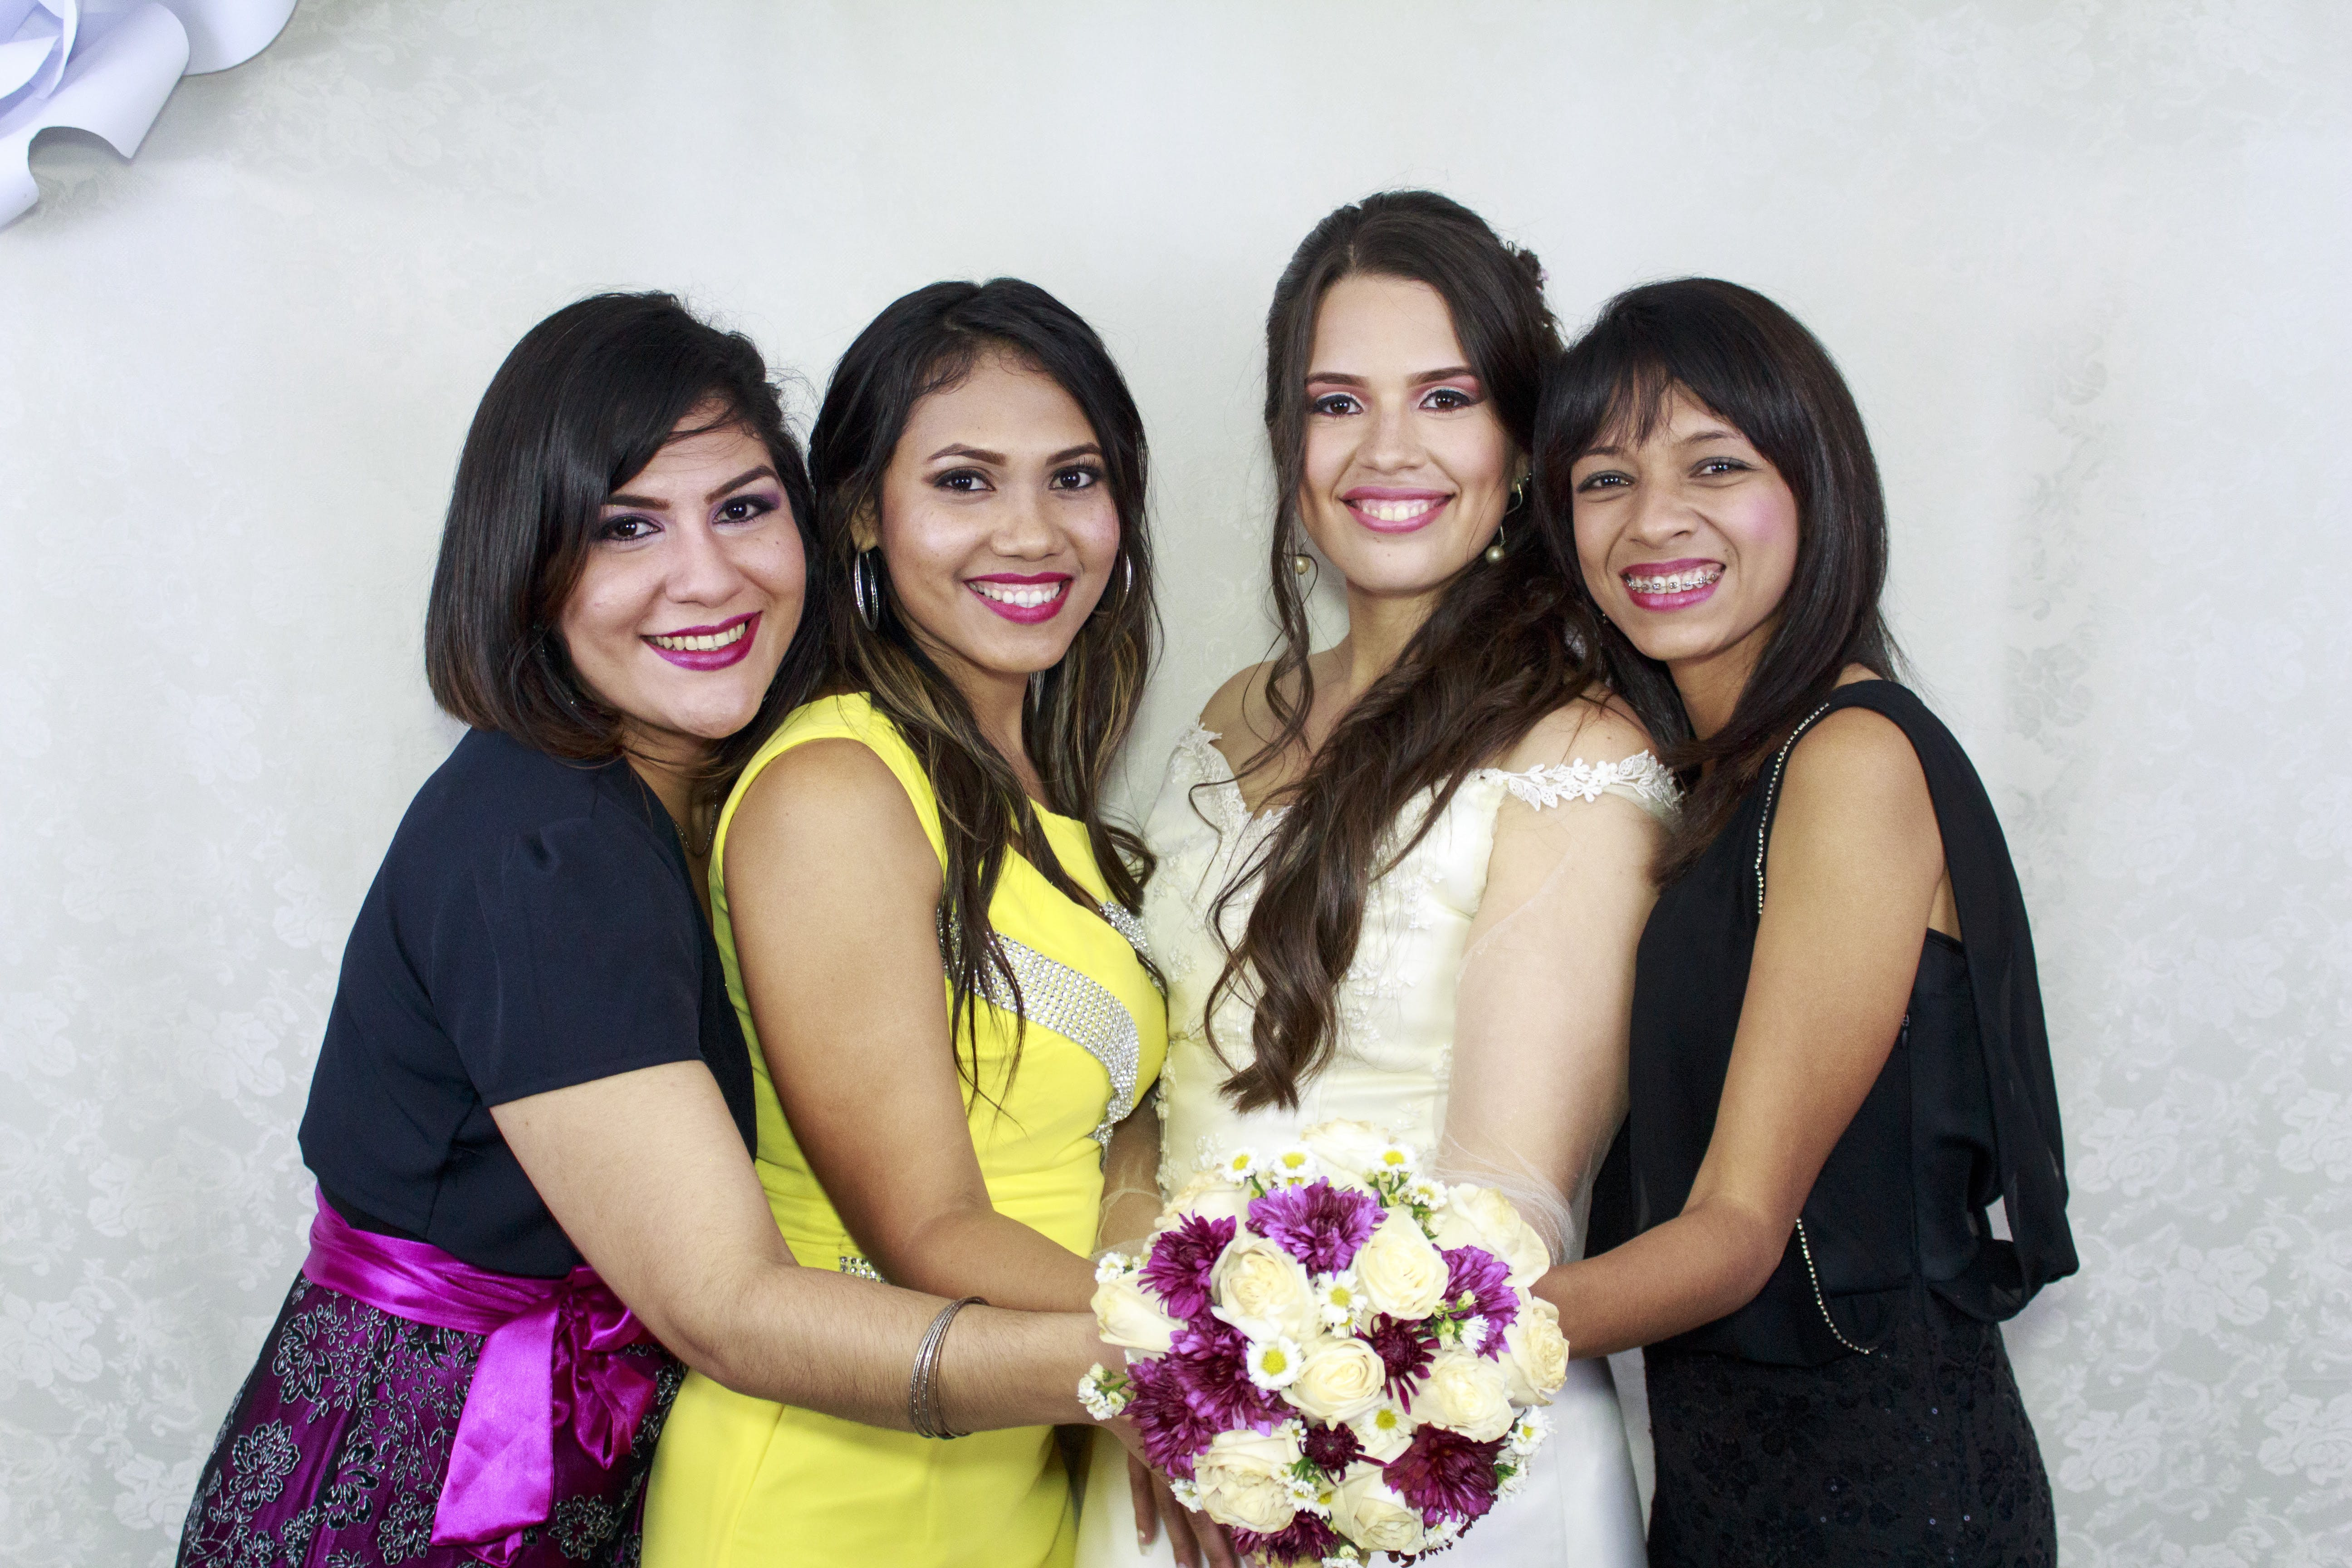 Woman in Beige Wedding Dress Holding Bouquet Flower Together With Other Three Woman in Assorted Colors of Dresses